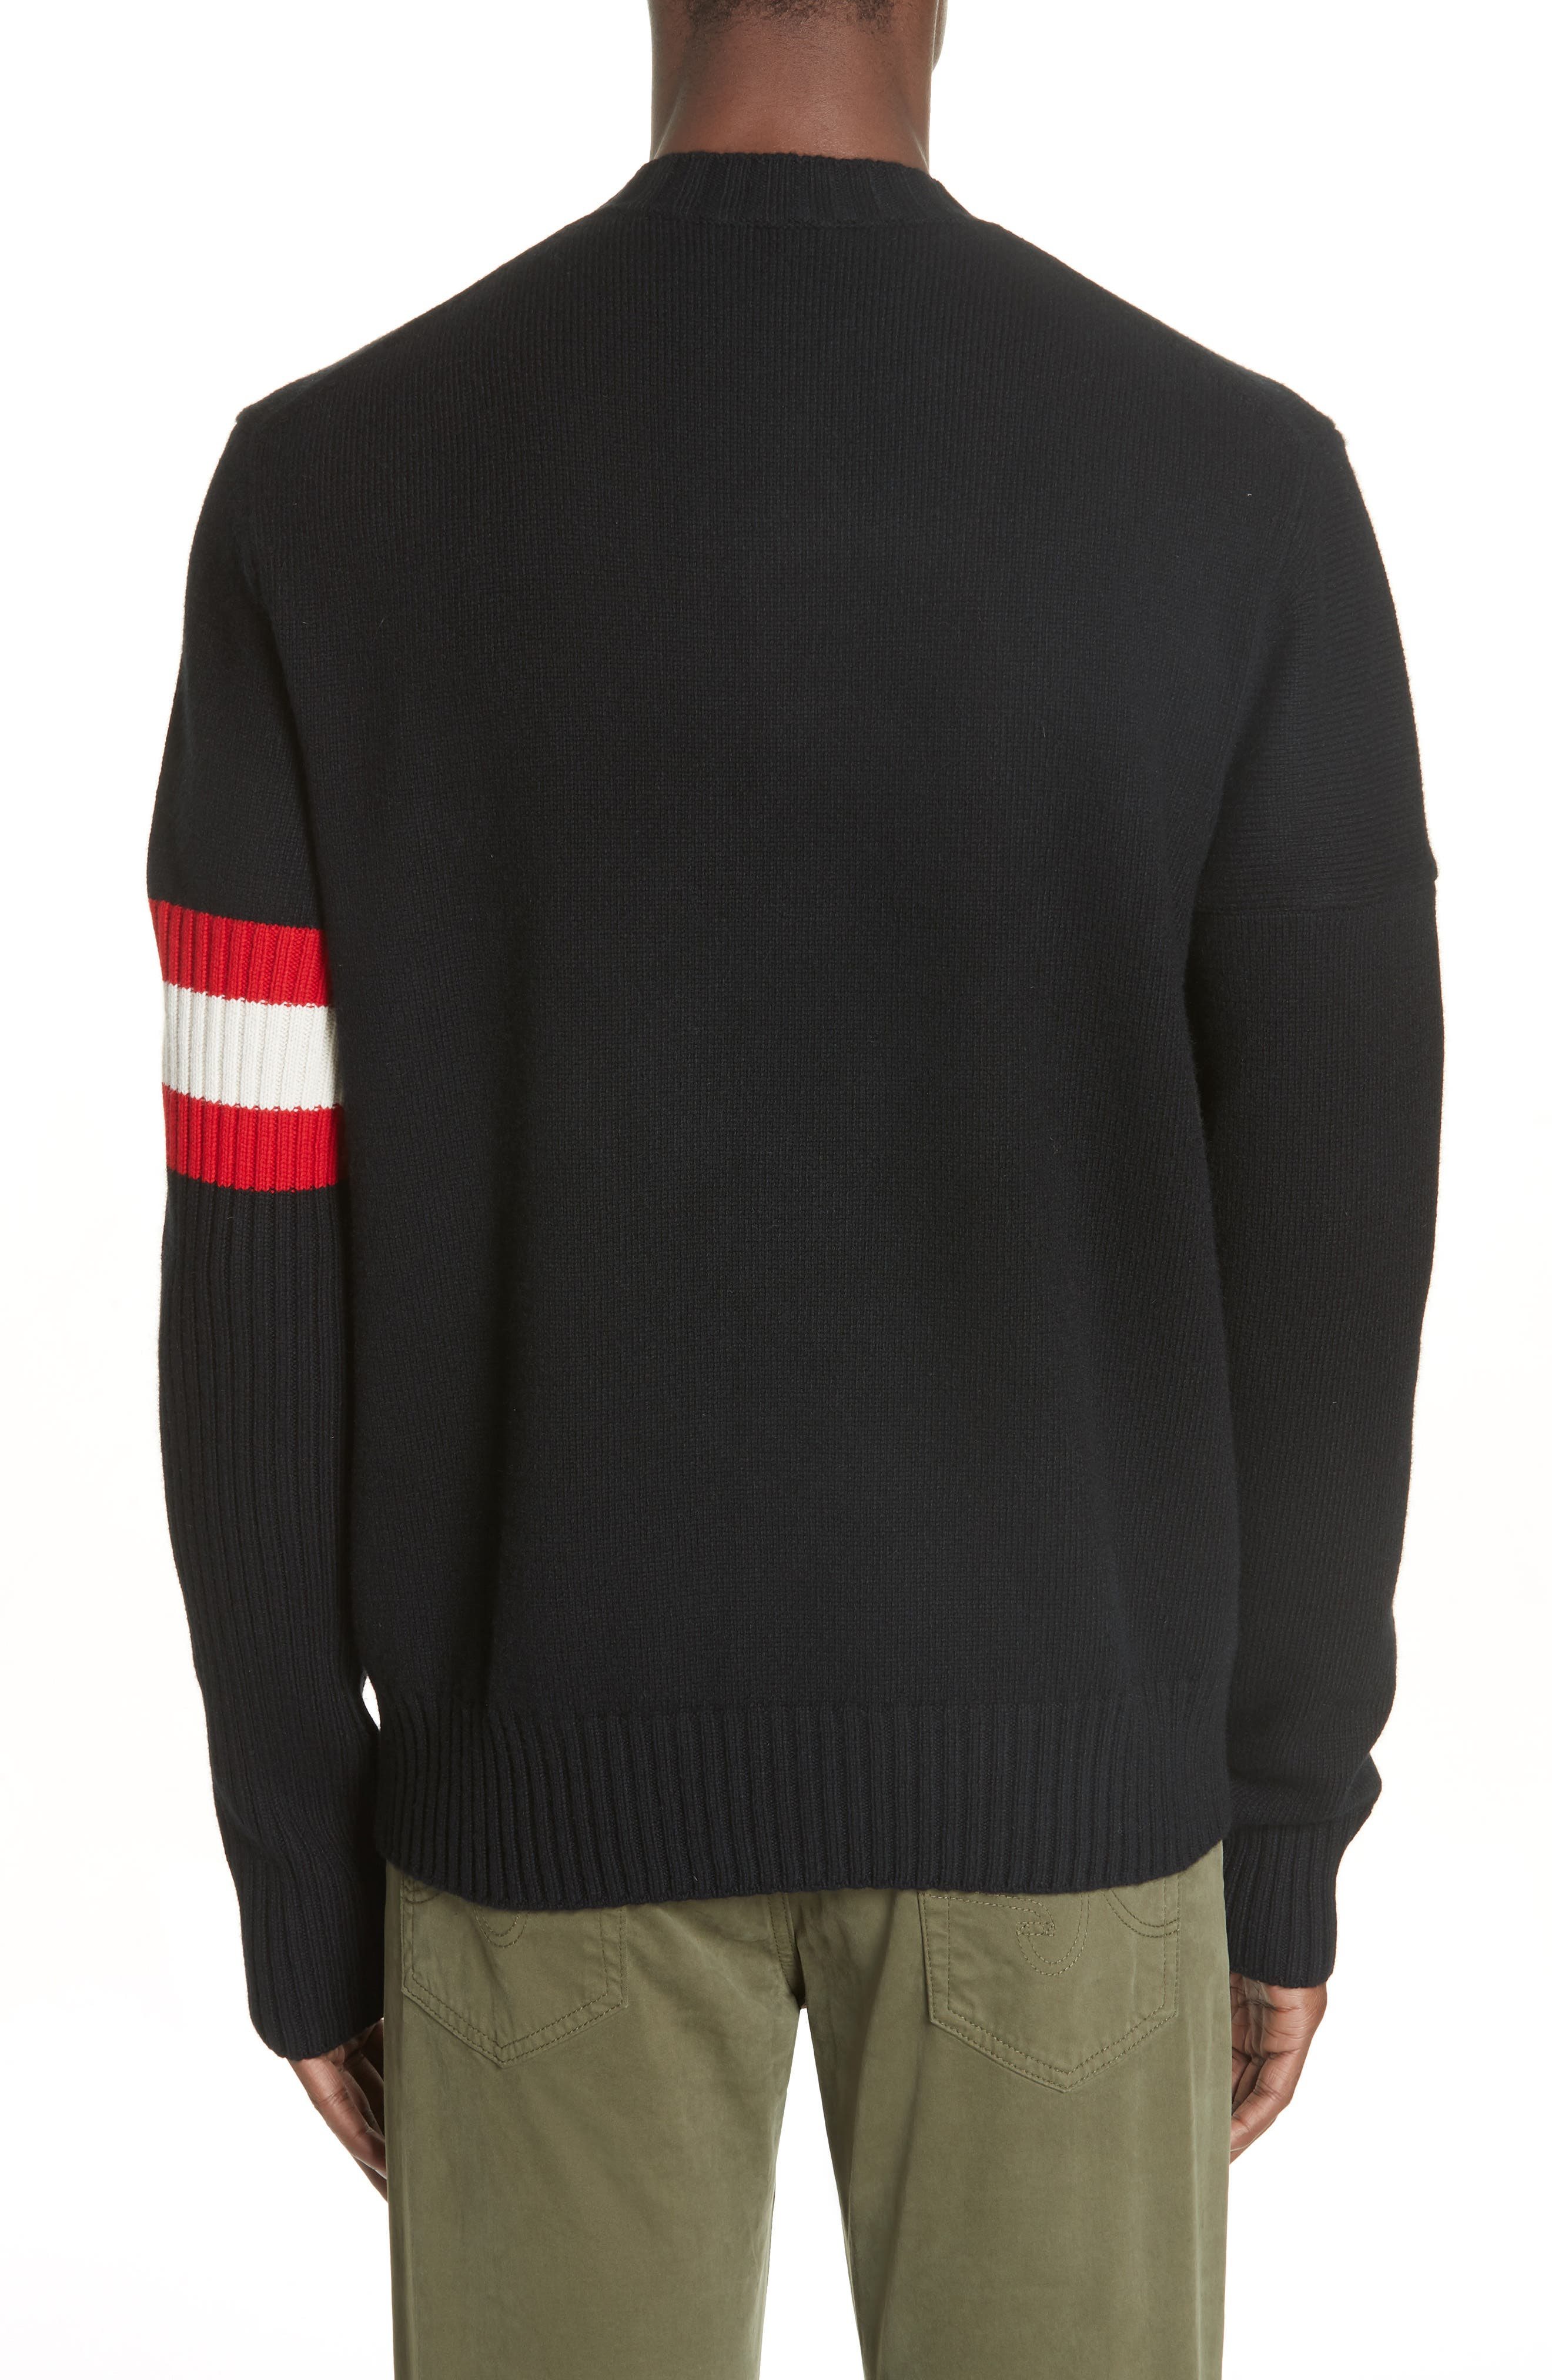 CALVIN KLEIN 205W39NYC,                             Cashmere Stripe Sleeve Sweater,                             Alternate thumbnail 2, color,                             001